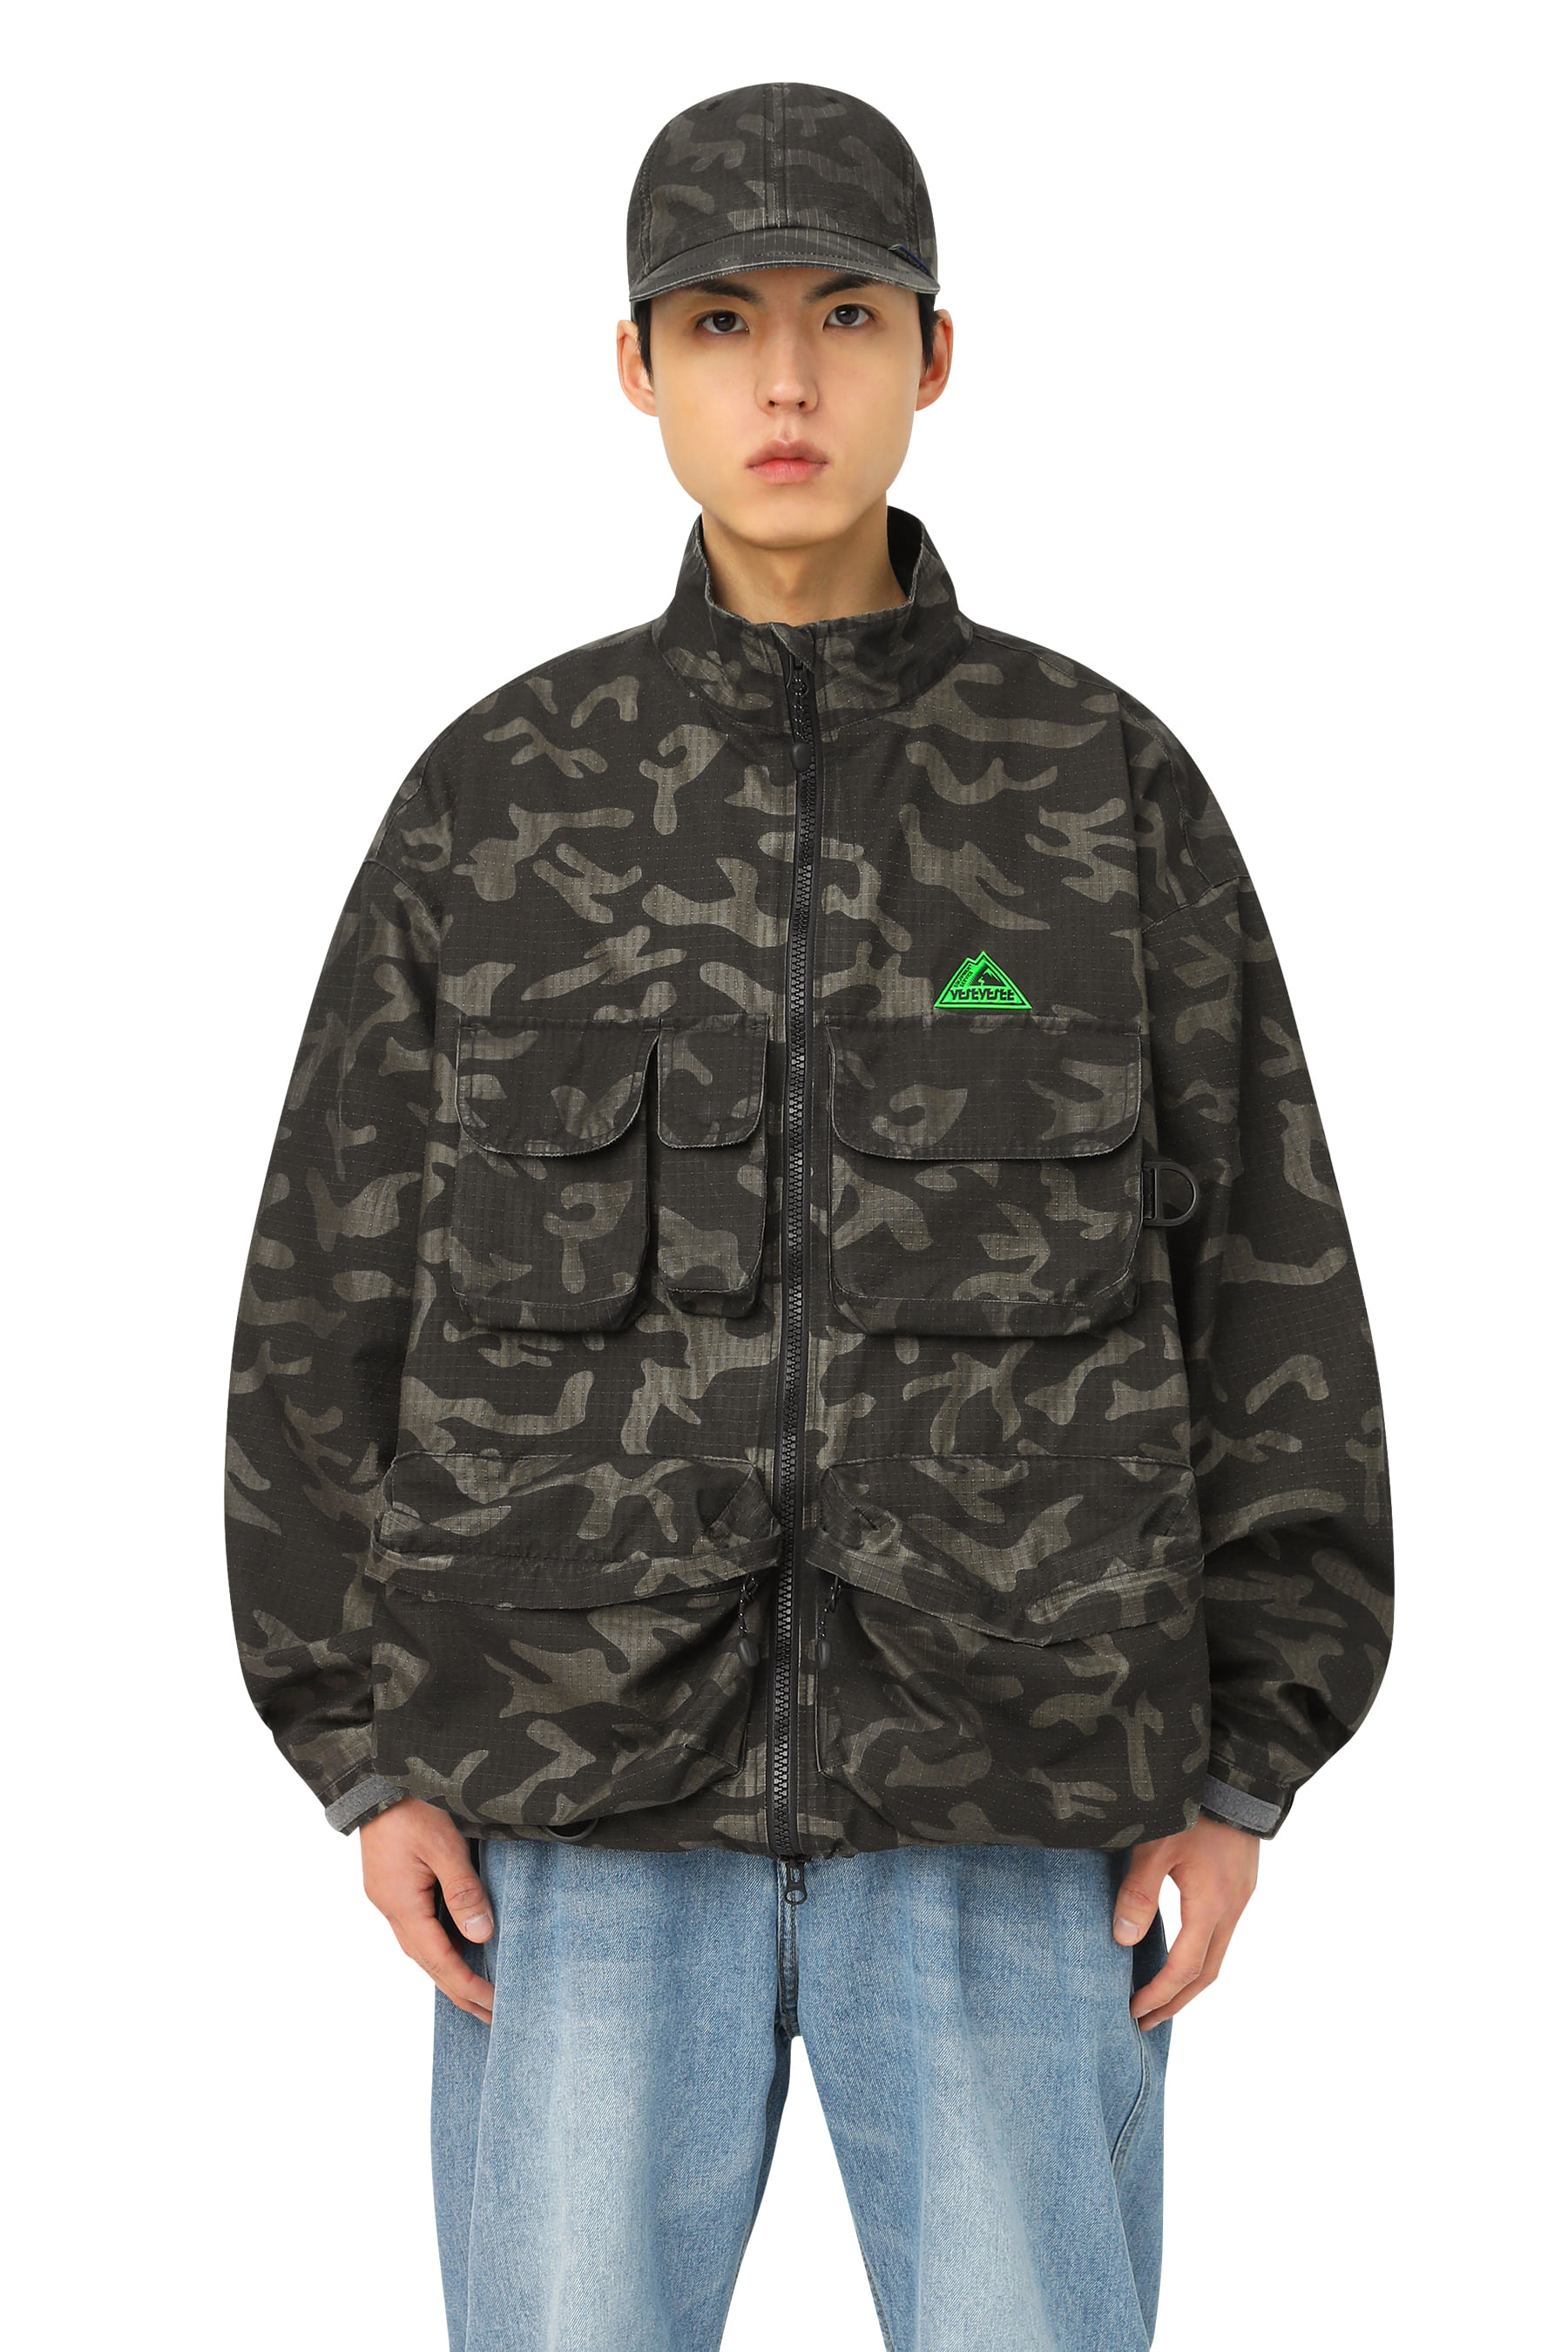 Y.E.S Fishing Parka Black Camo